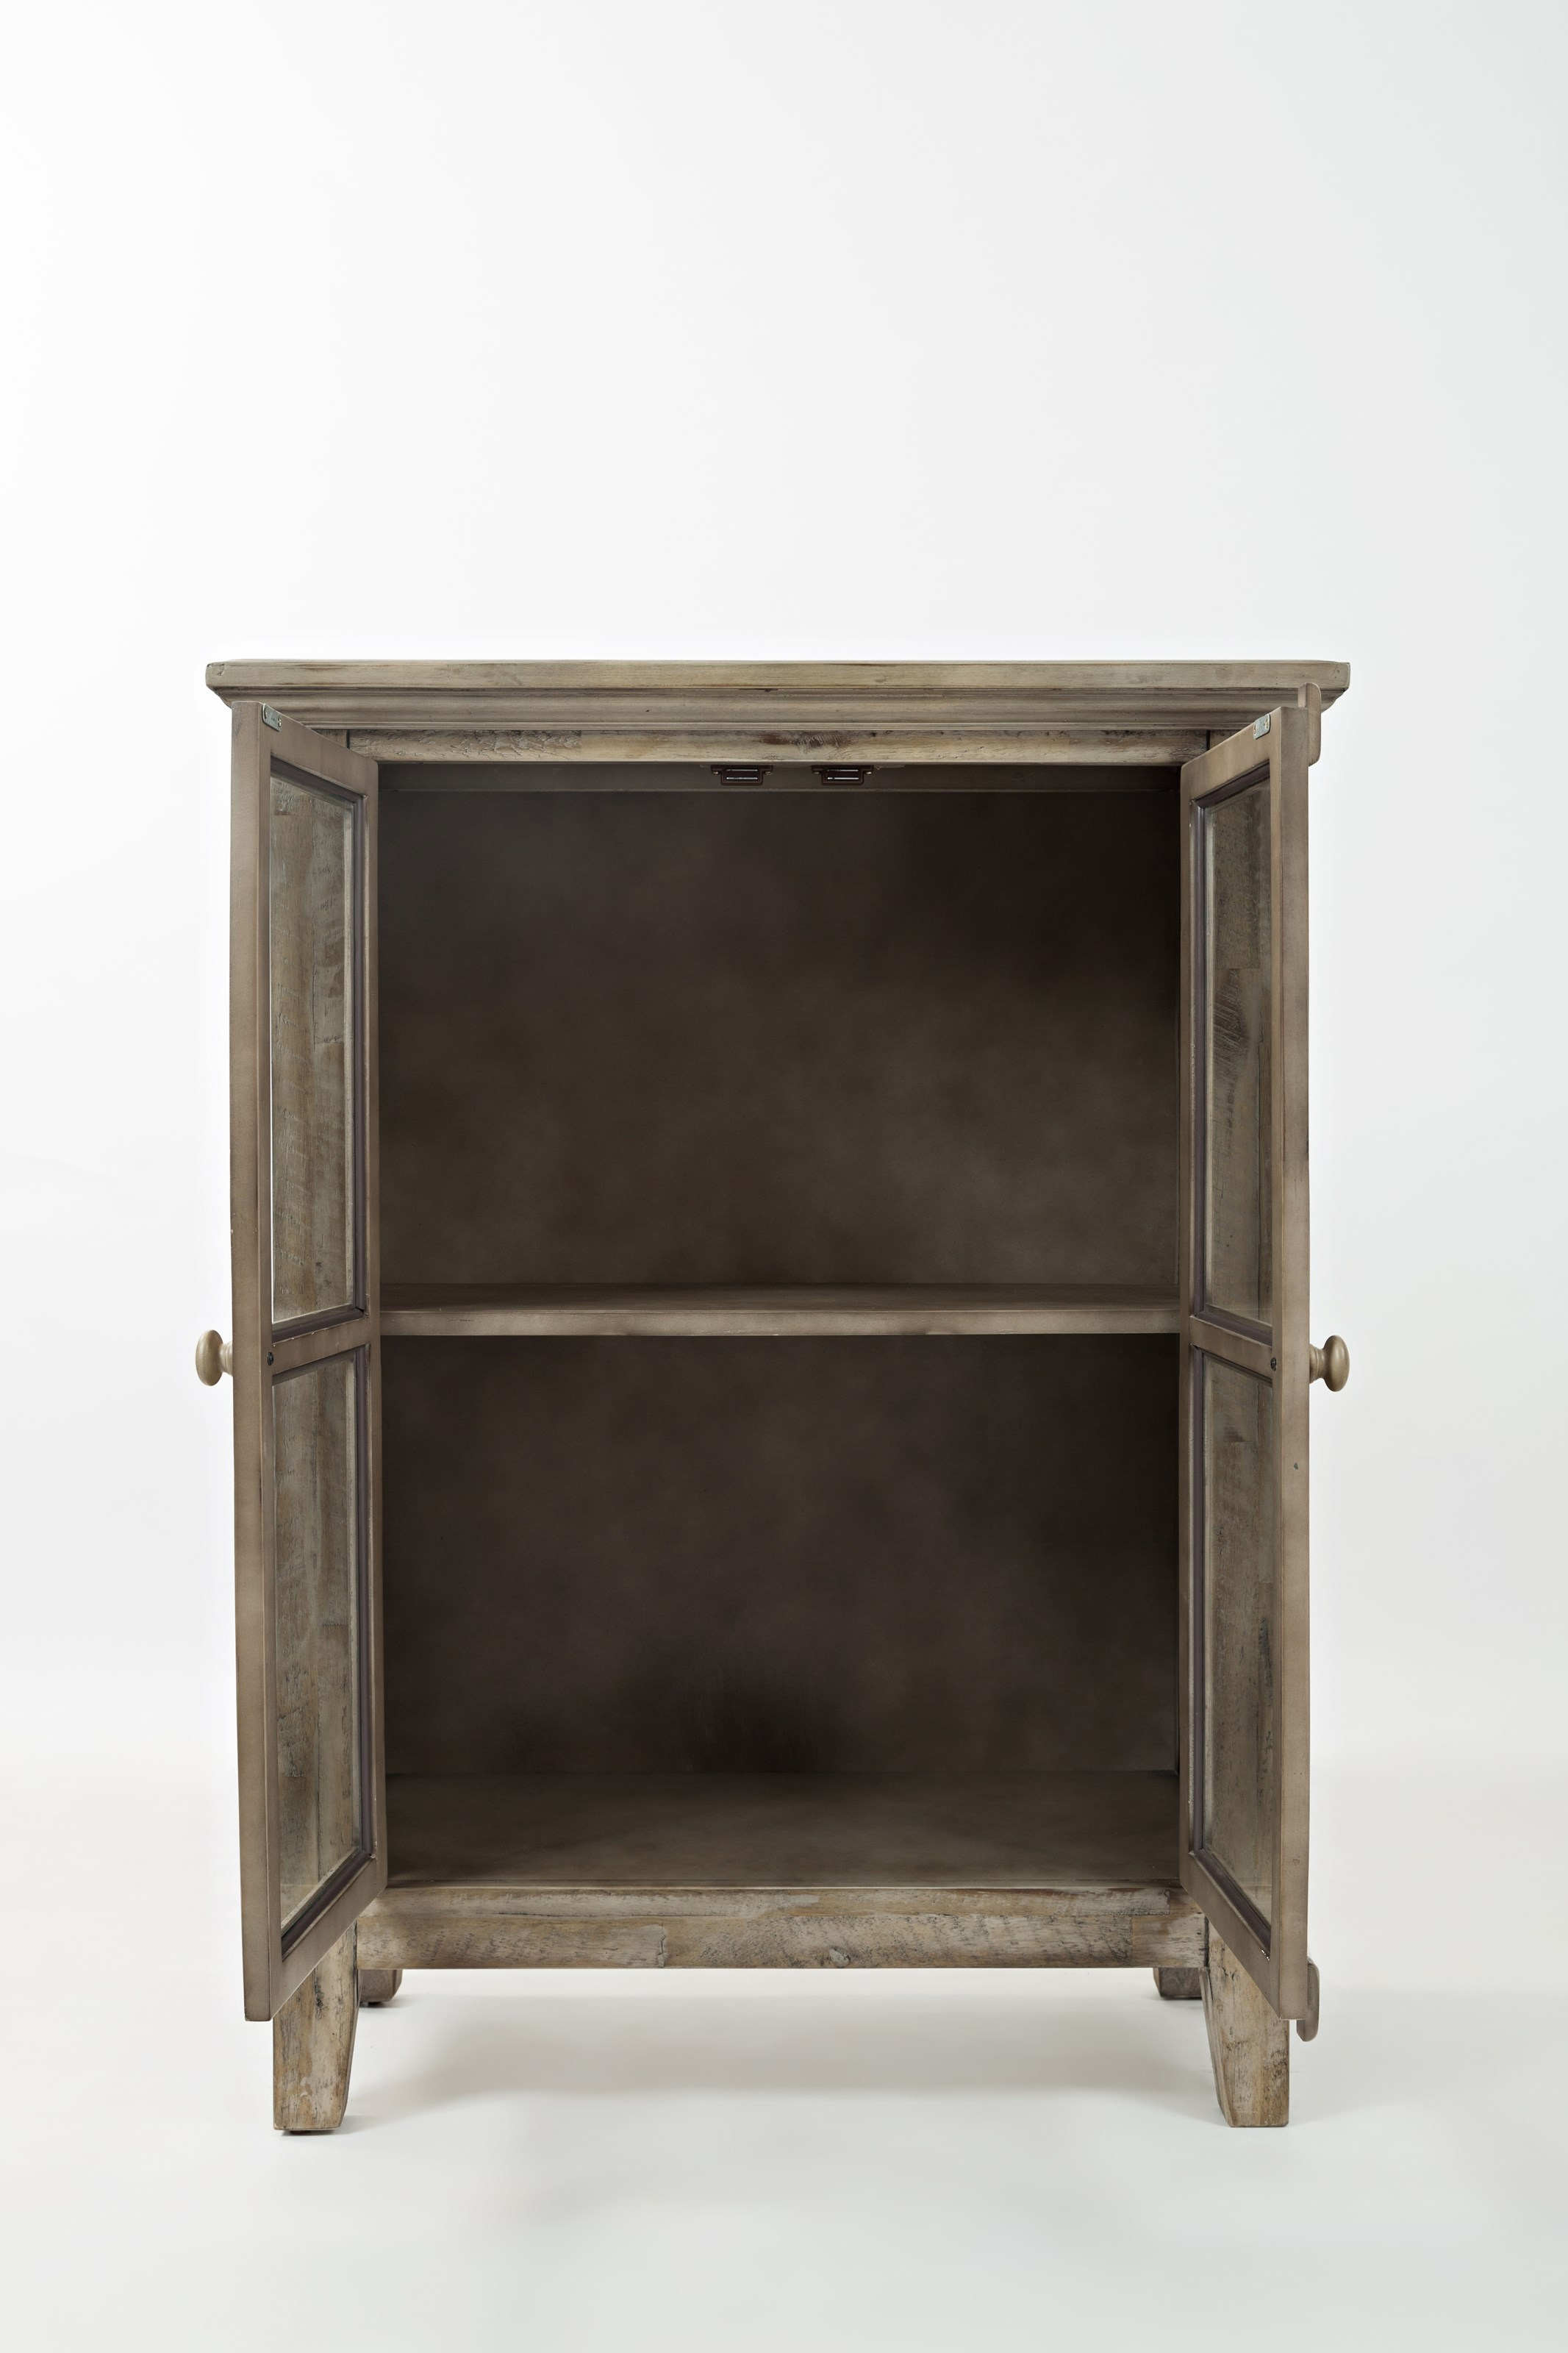 Picture of: Rustic Shores 32 Accent Cabinet By Jofran 136279 Kloss Furniture